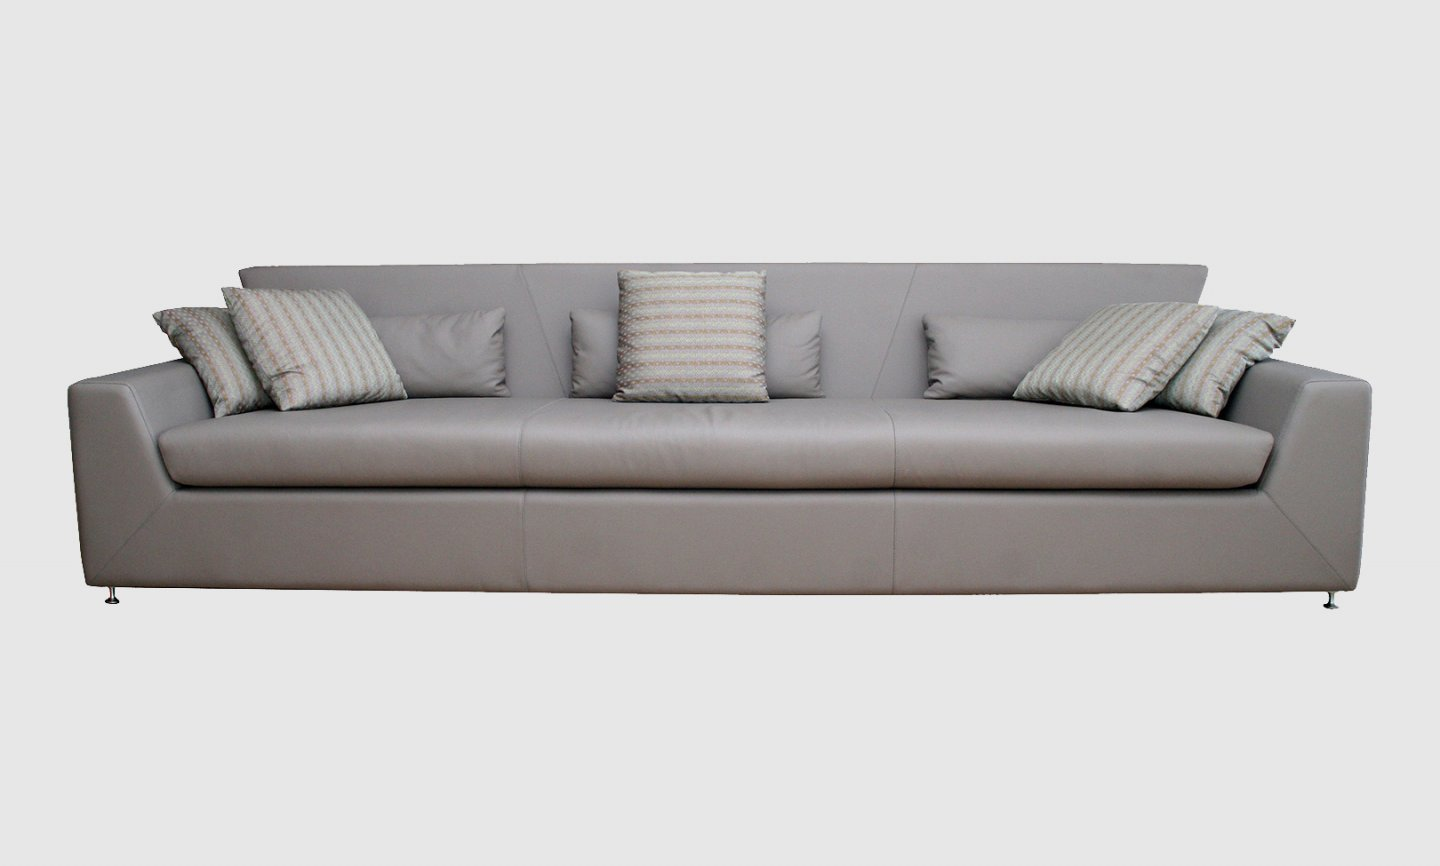 Grey Couch 2 - project overview image